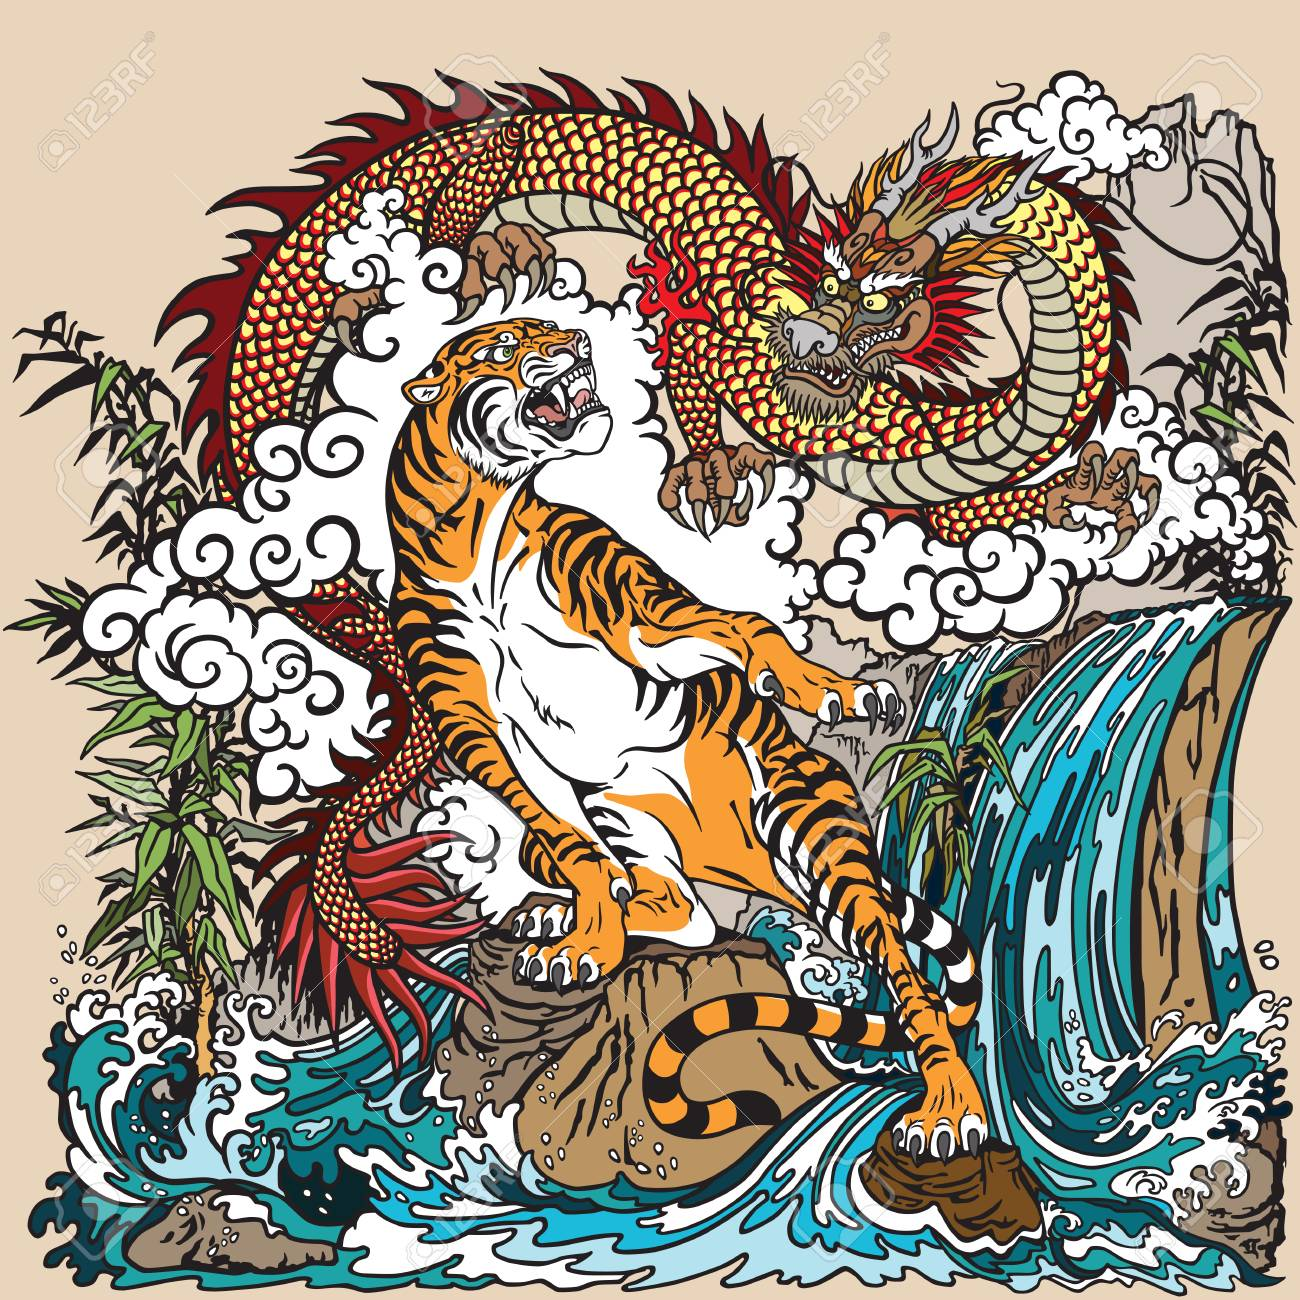 Chinese Dragon And Tiger In The Landscape With Waterfall , Rocks.. Royalty  Free Cliparts, Vectors, And Stock Illustration. Image 106057508.